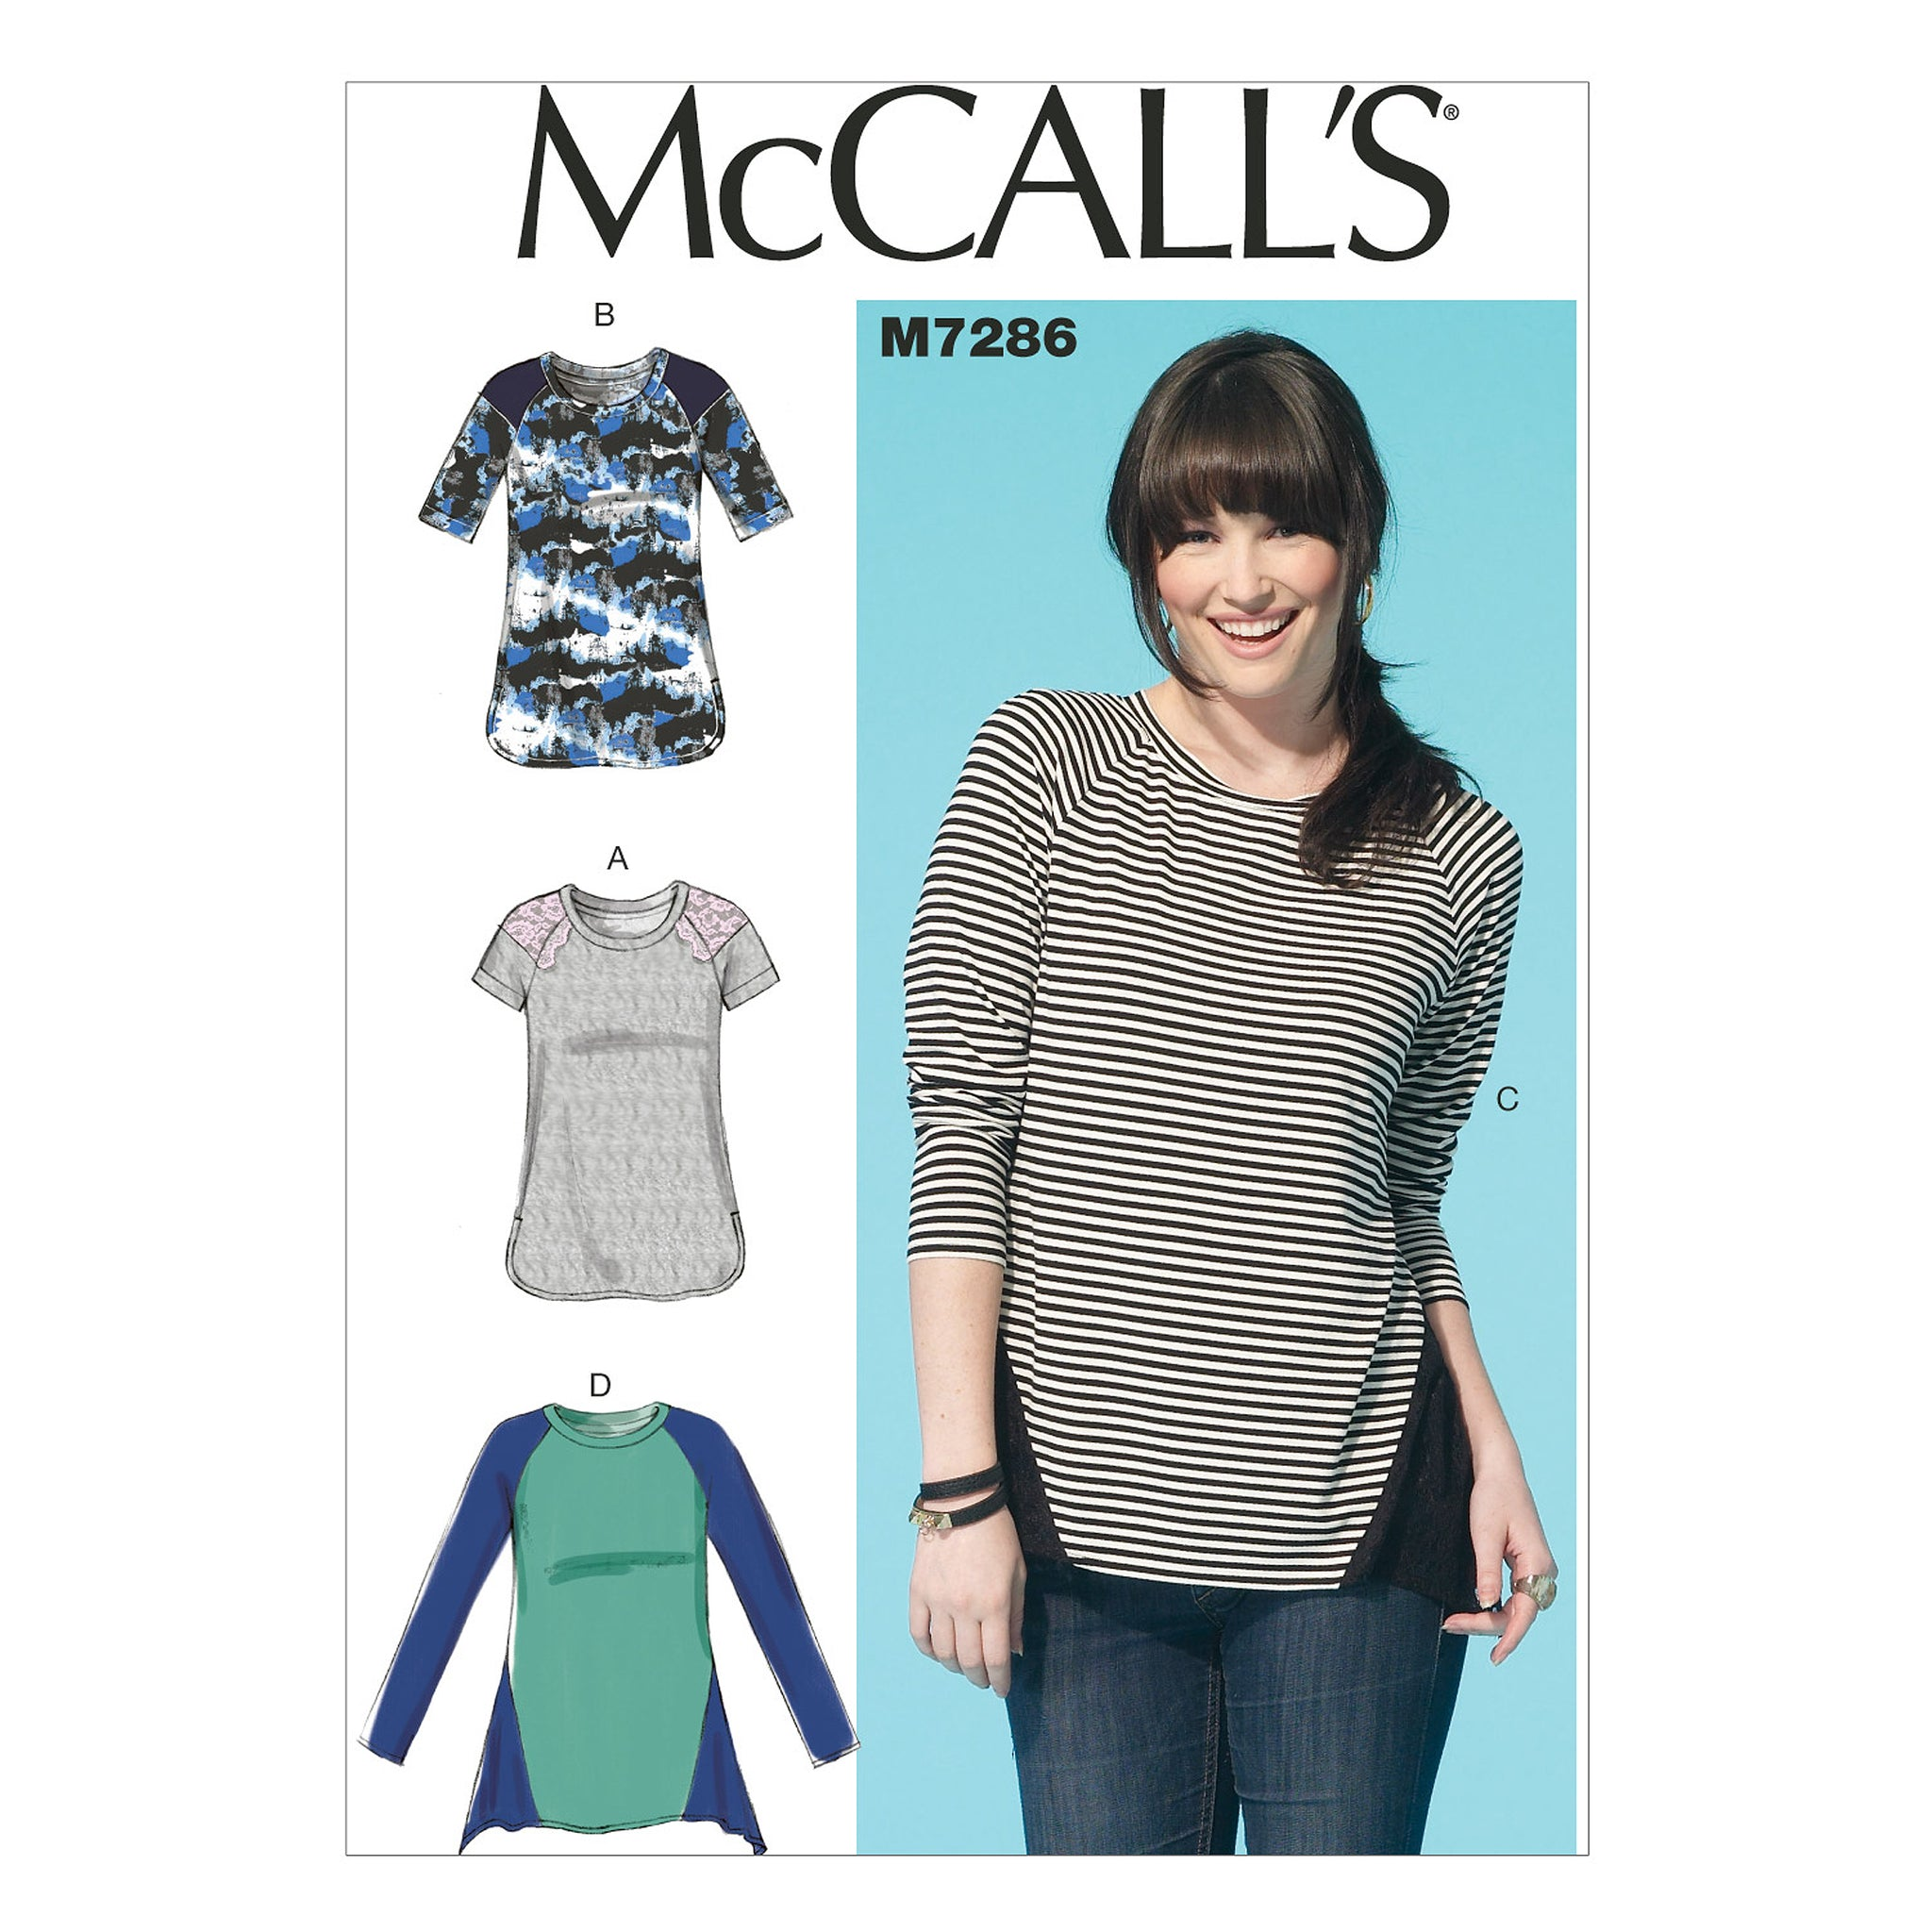 McCall's M72860Y0 Misses' Tops XSM-SML-MED